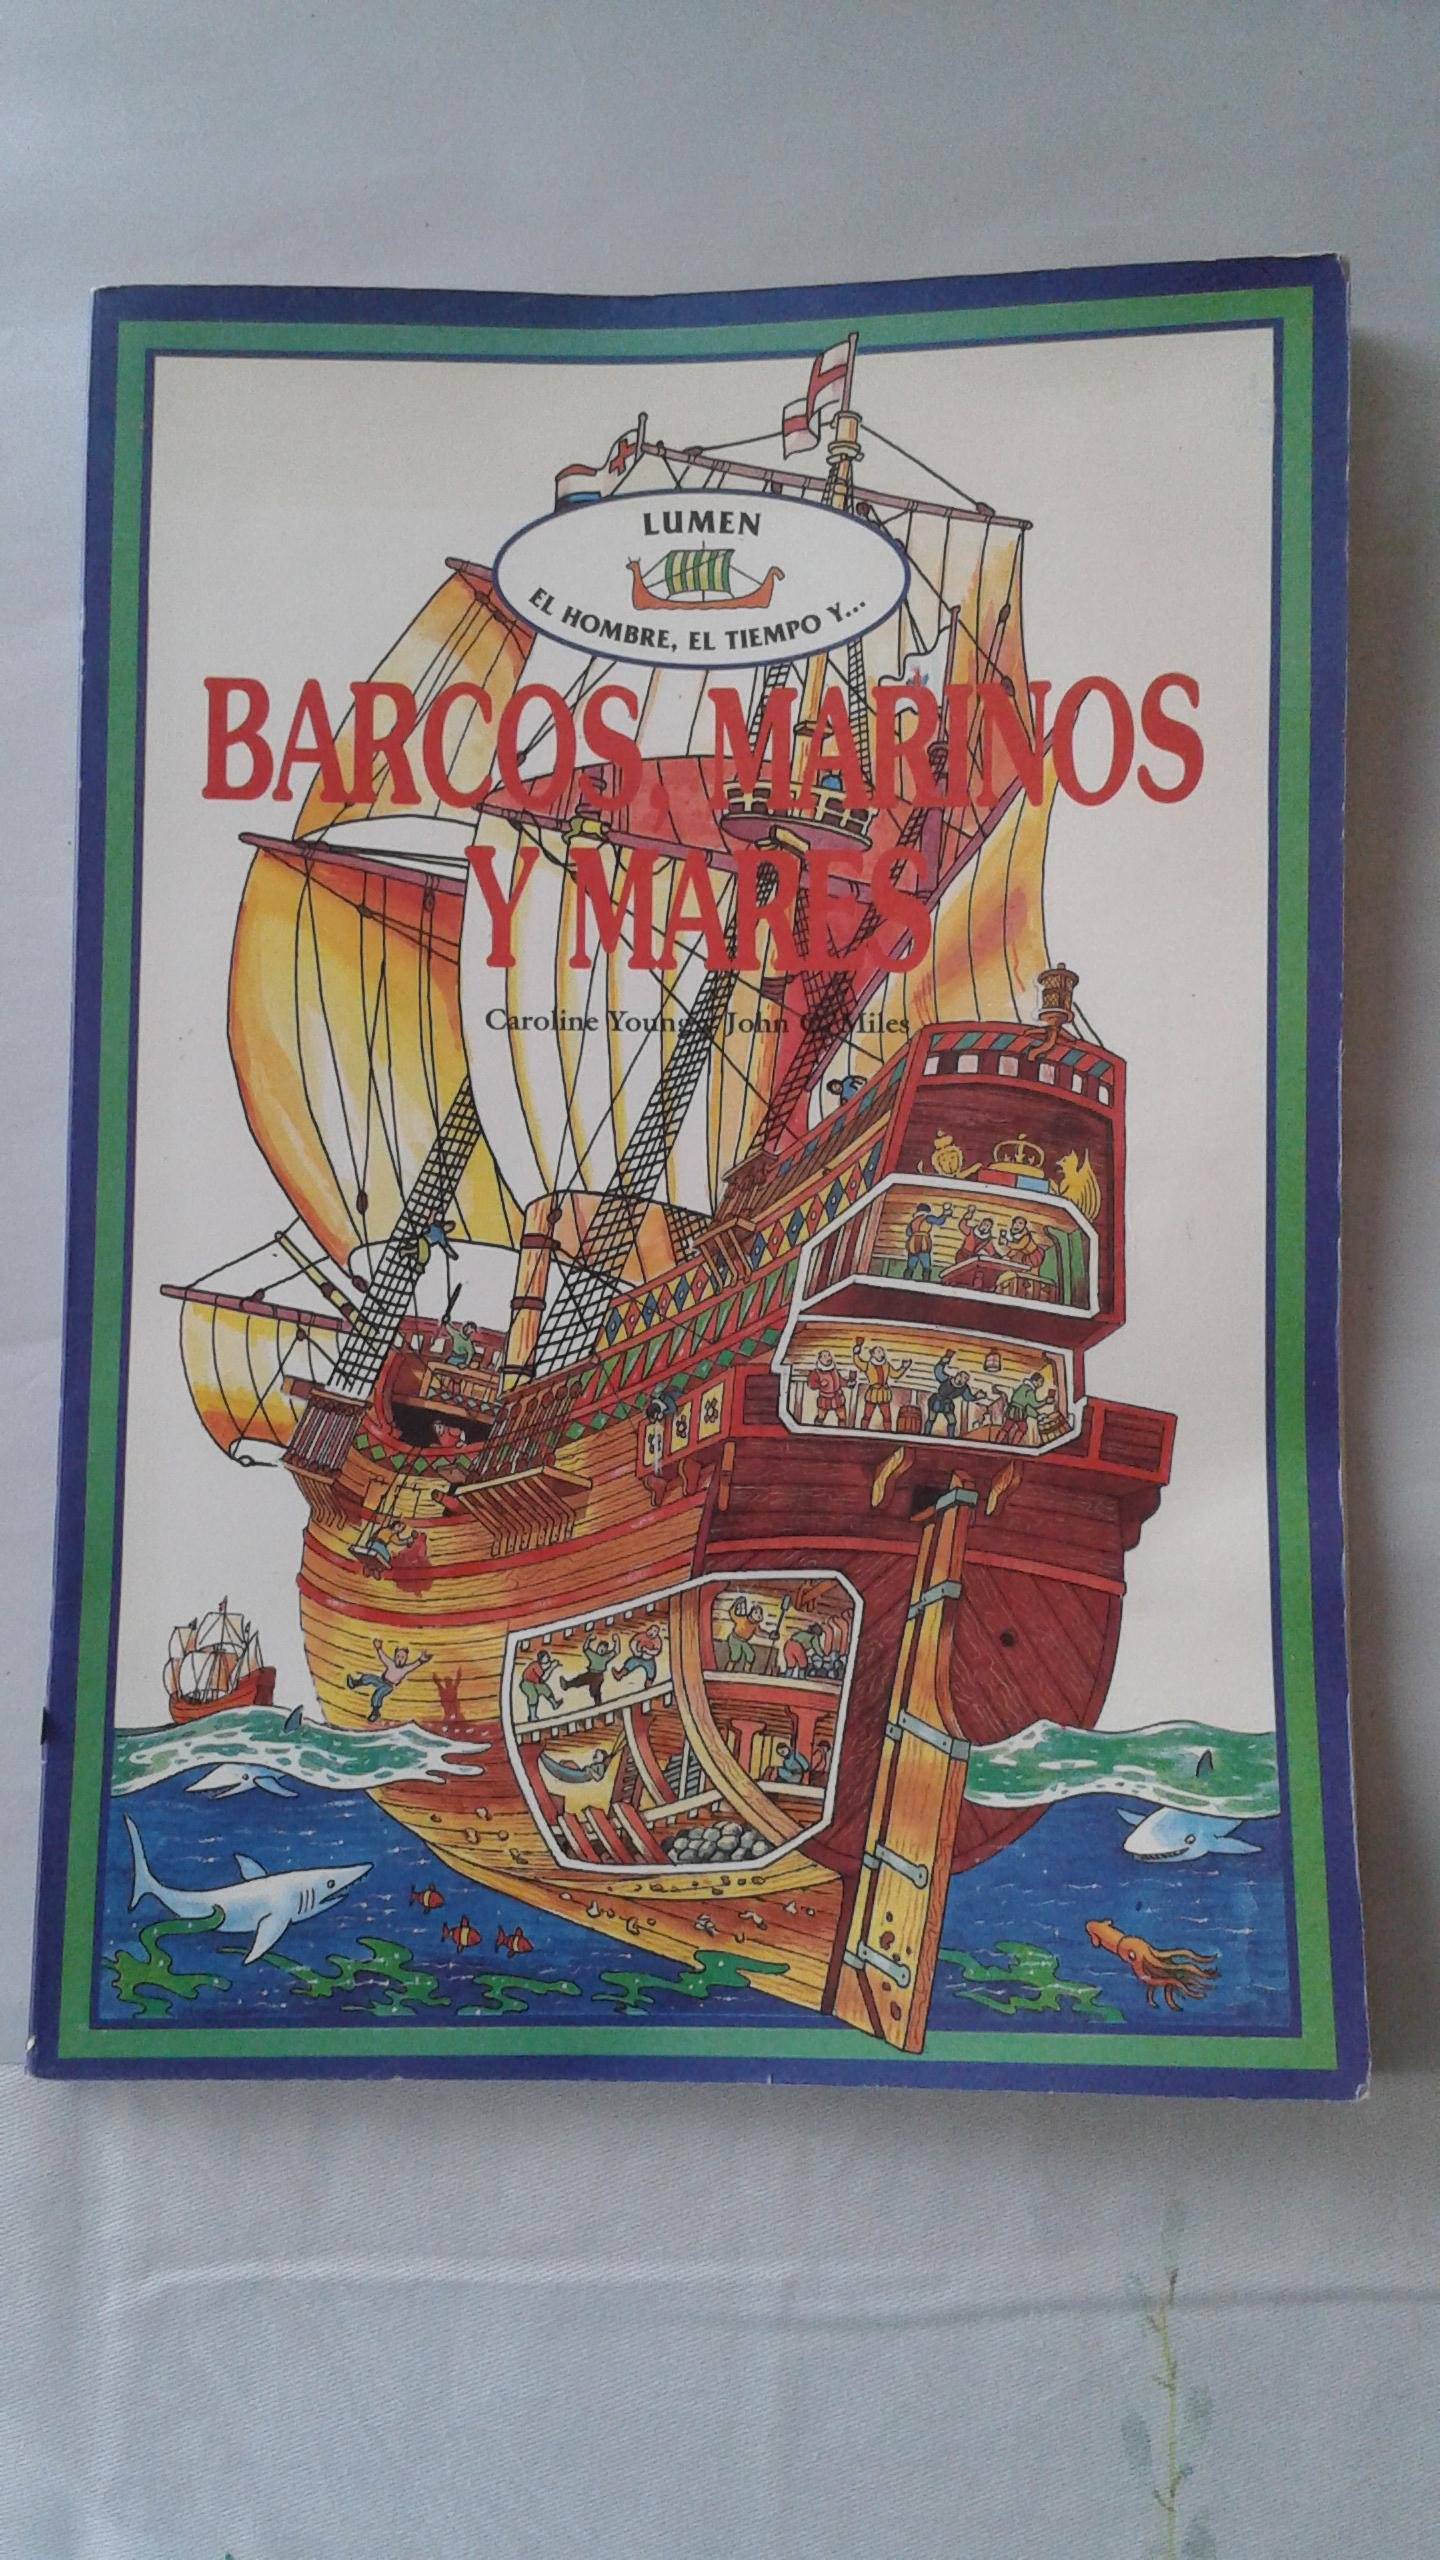 Amazon.com: Barcos, Marinos y Mares (Spanish Edition) (9789507240324): Miles Young: Books